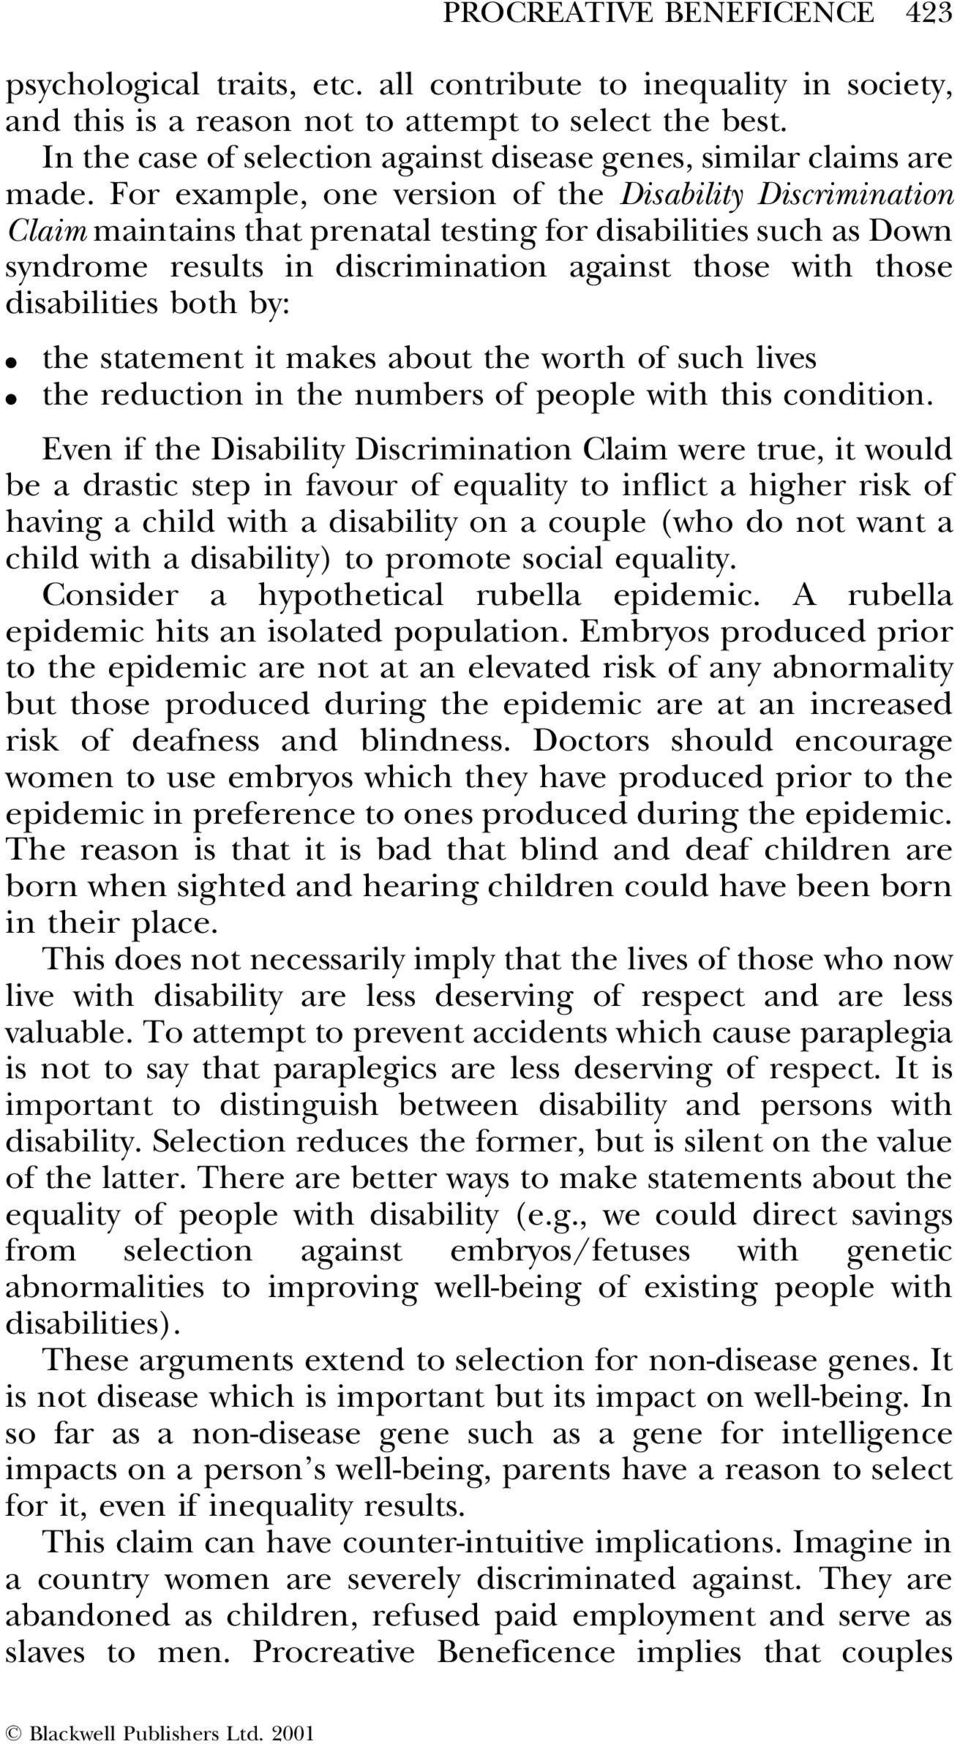 For example, one version of the Disability Discrimination Claim maintains that prenatal testing for disabilities such as Down syndrome results in discrimination against those with those disabilities